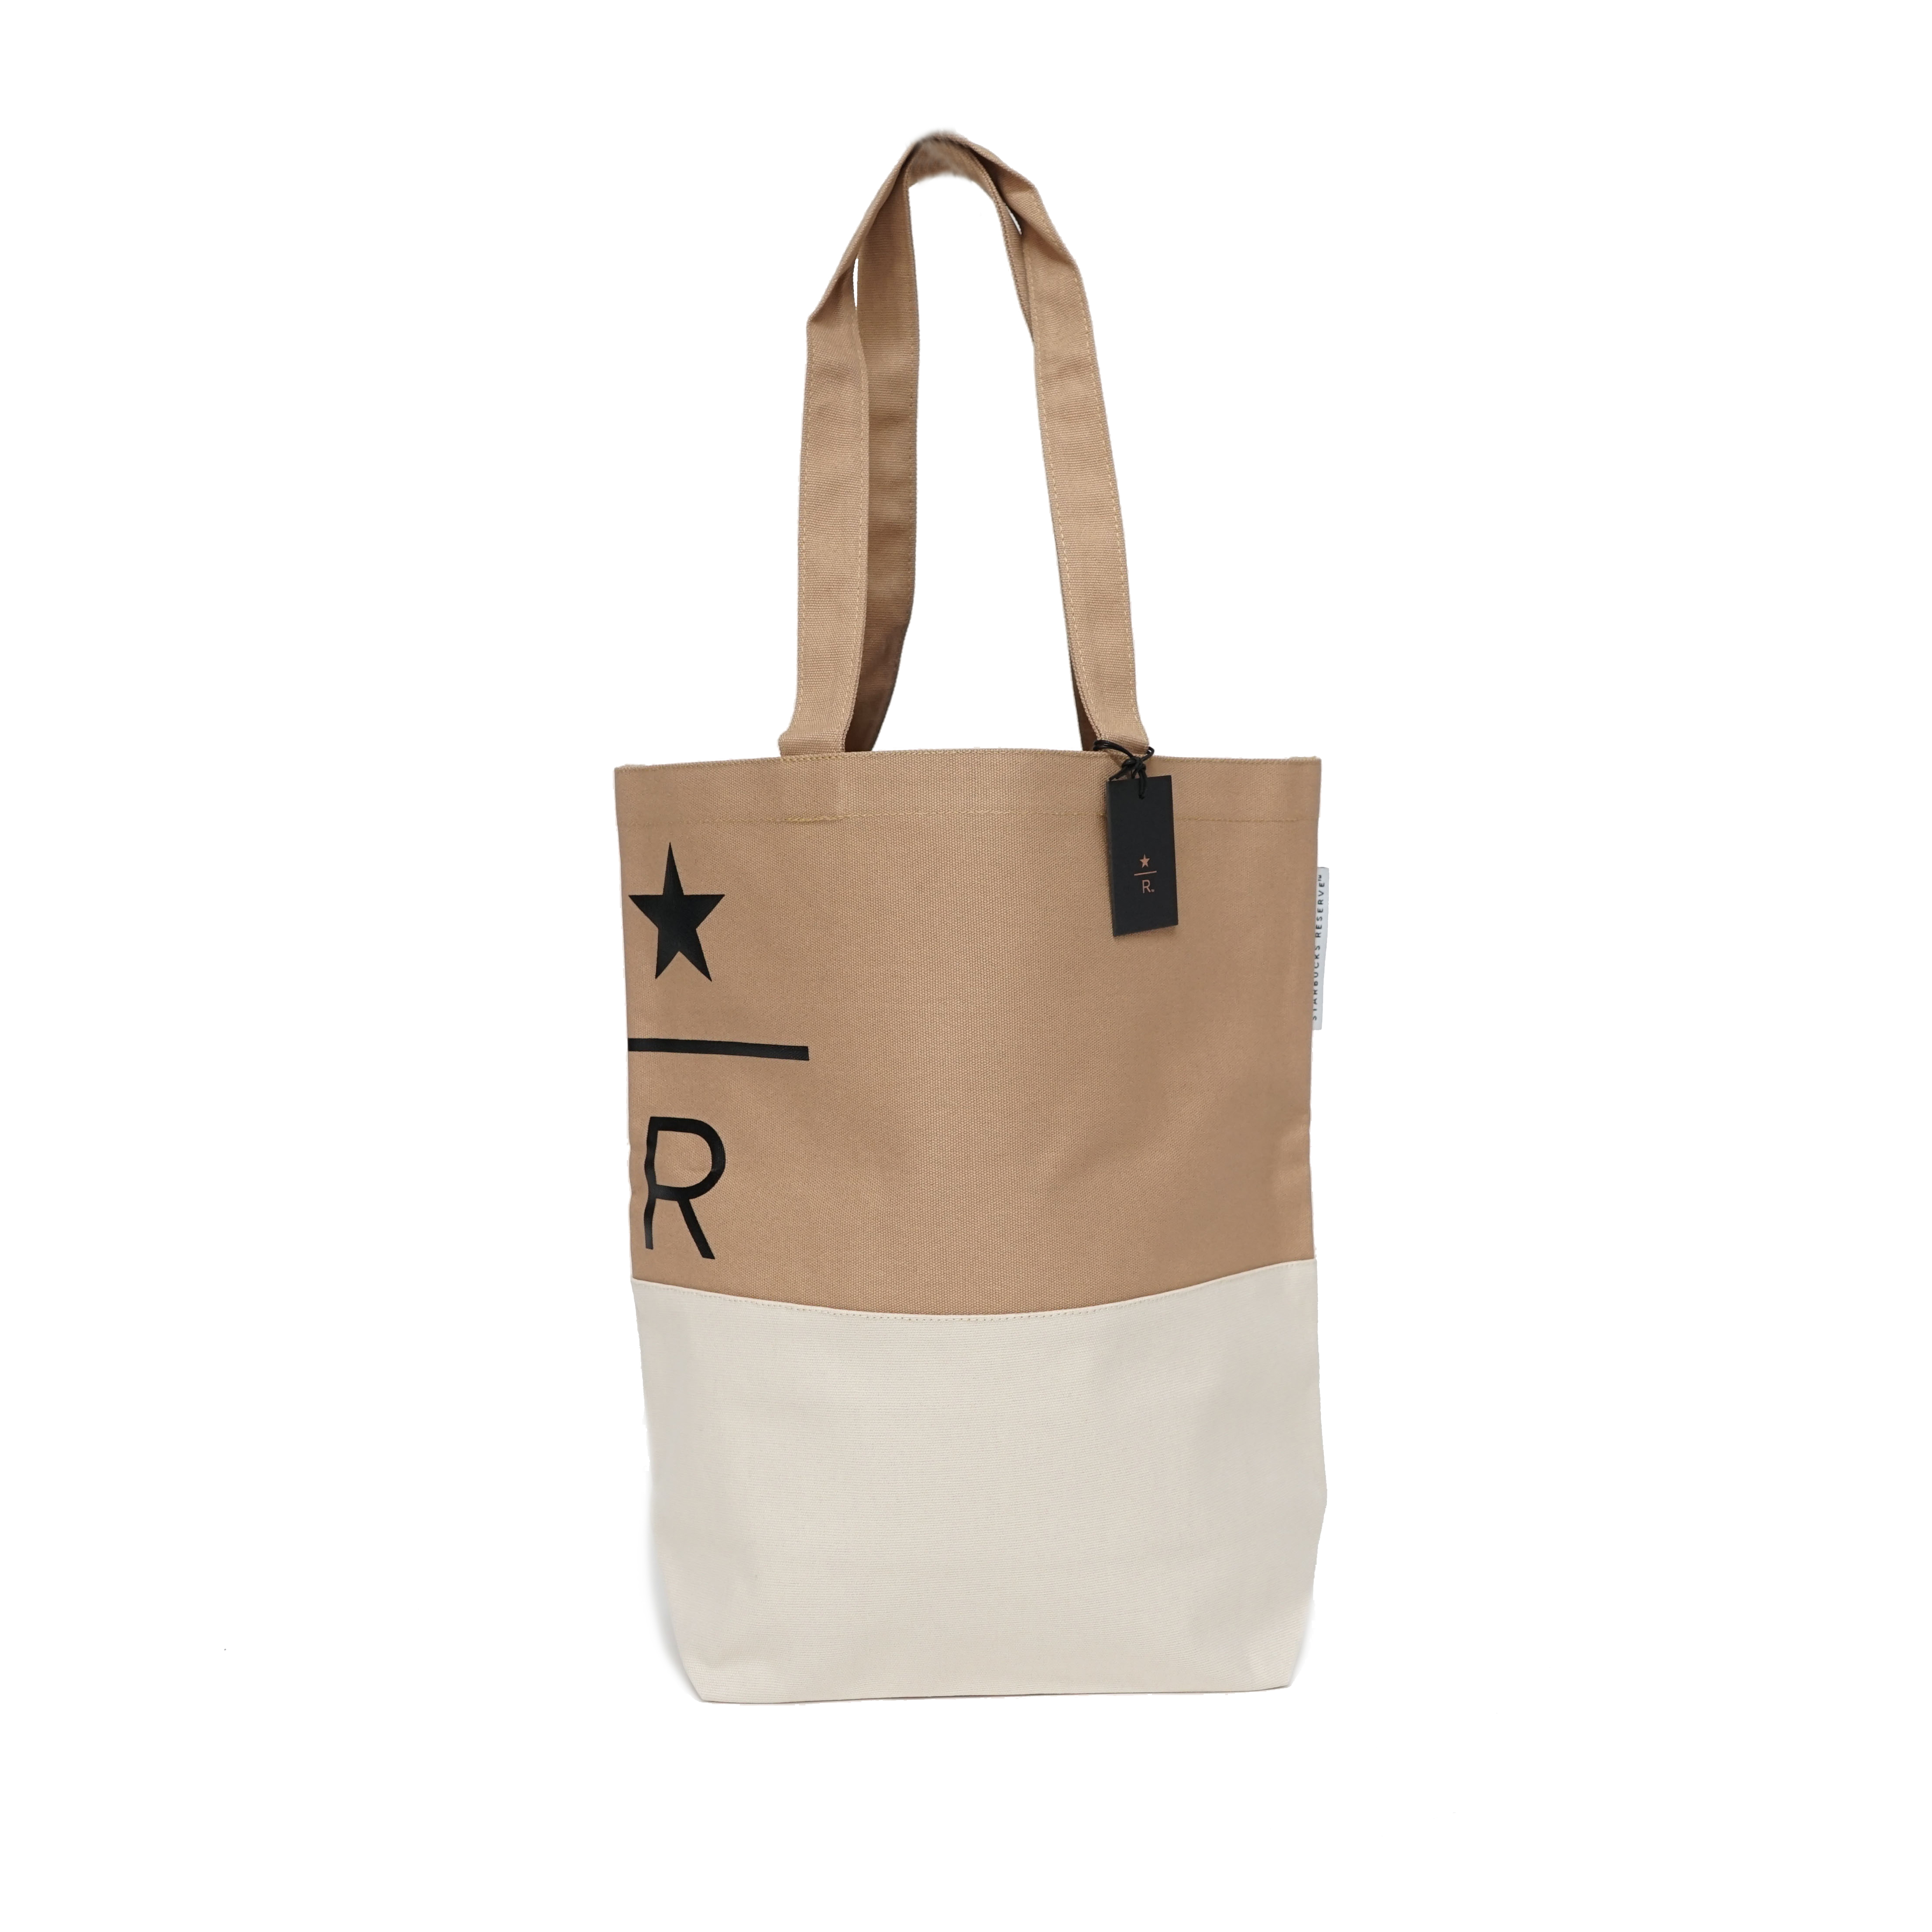 Starbucks Star R Canvas Tote